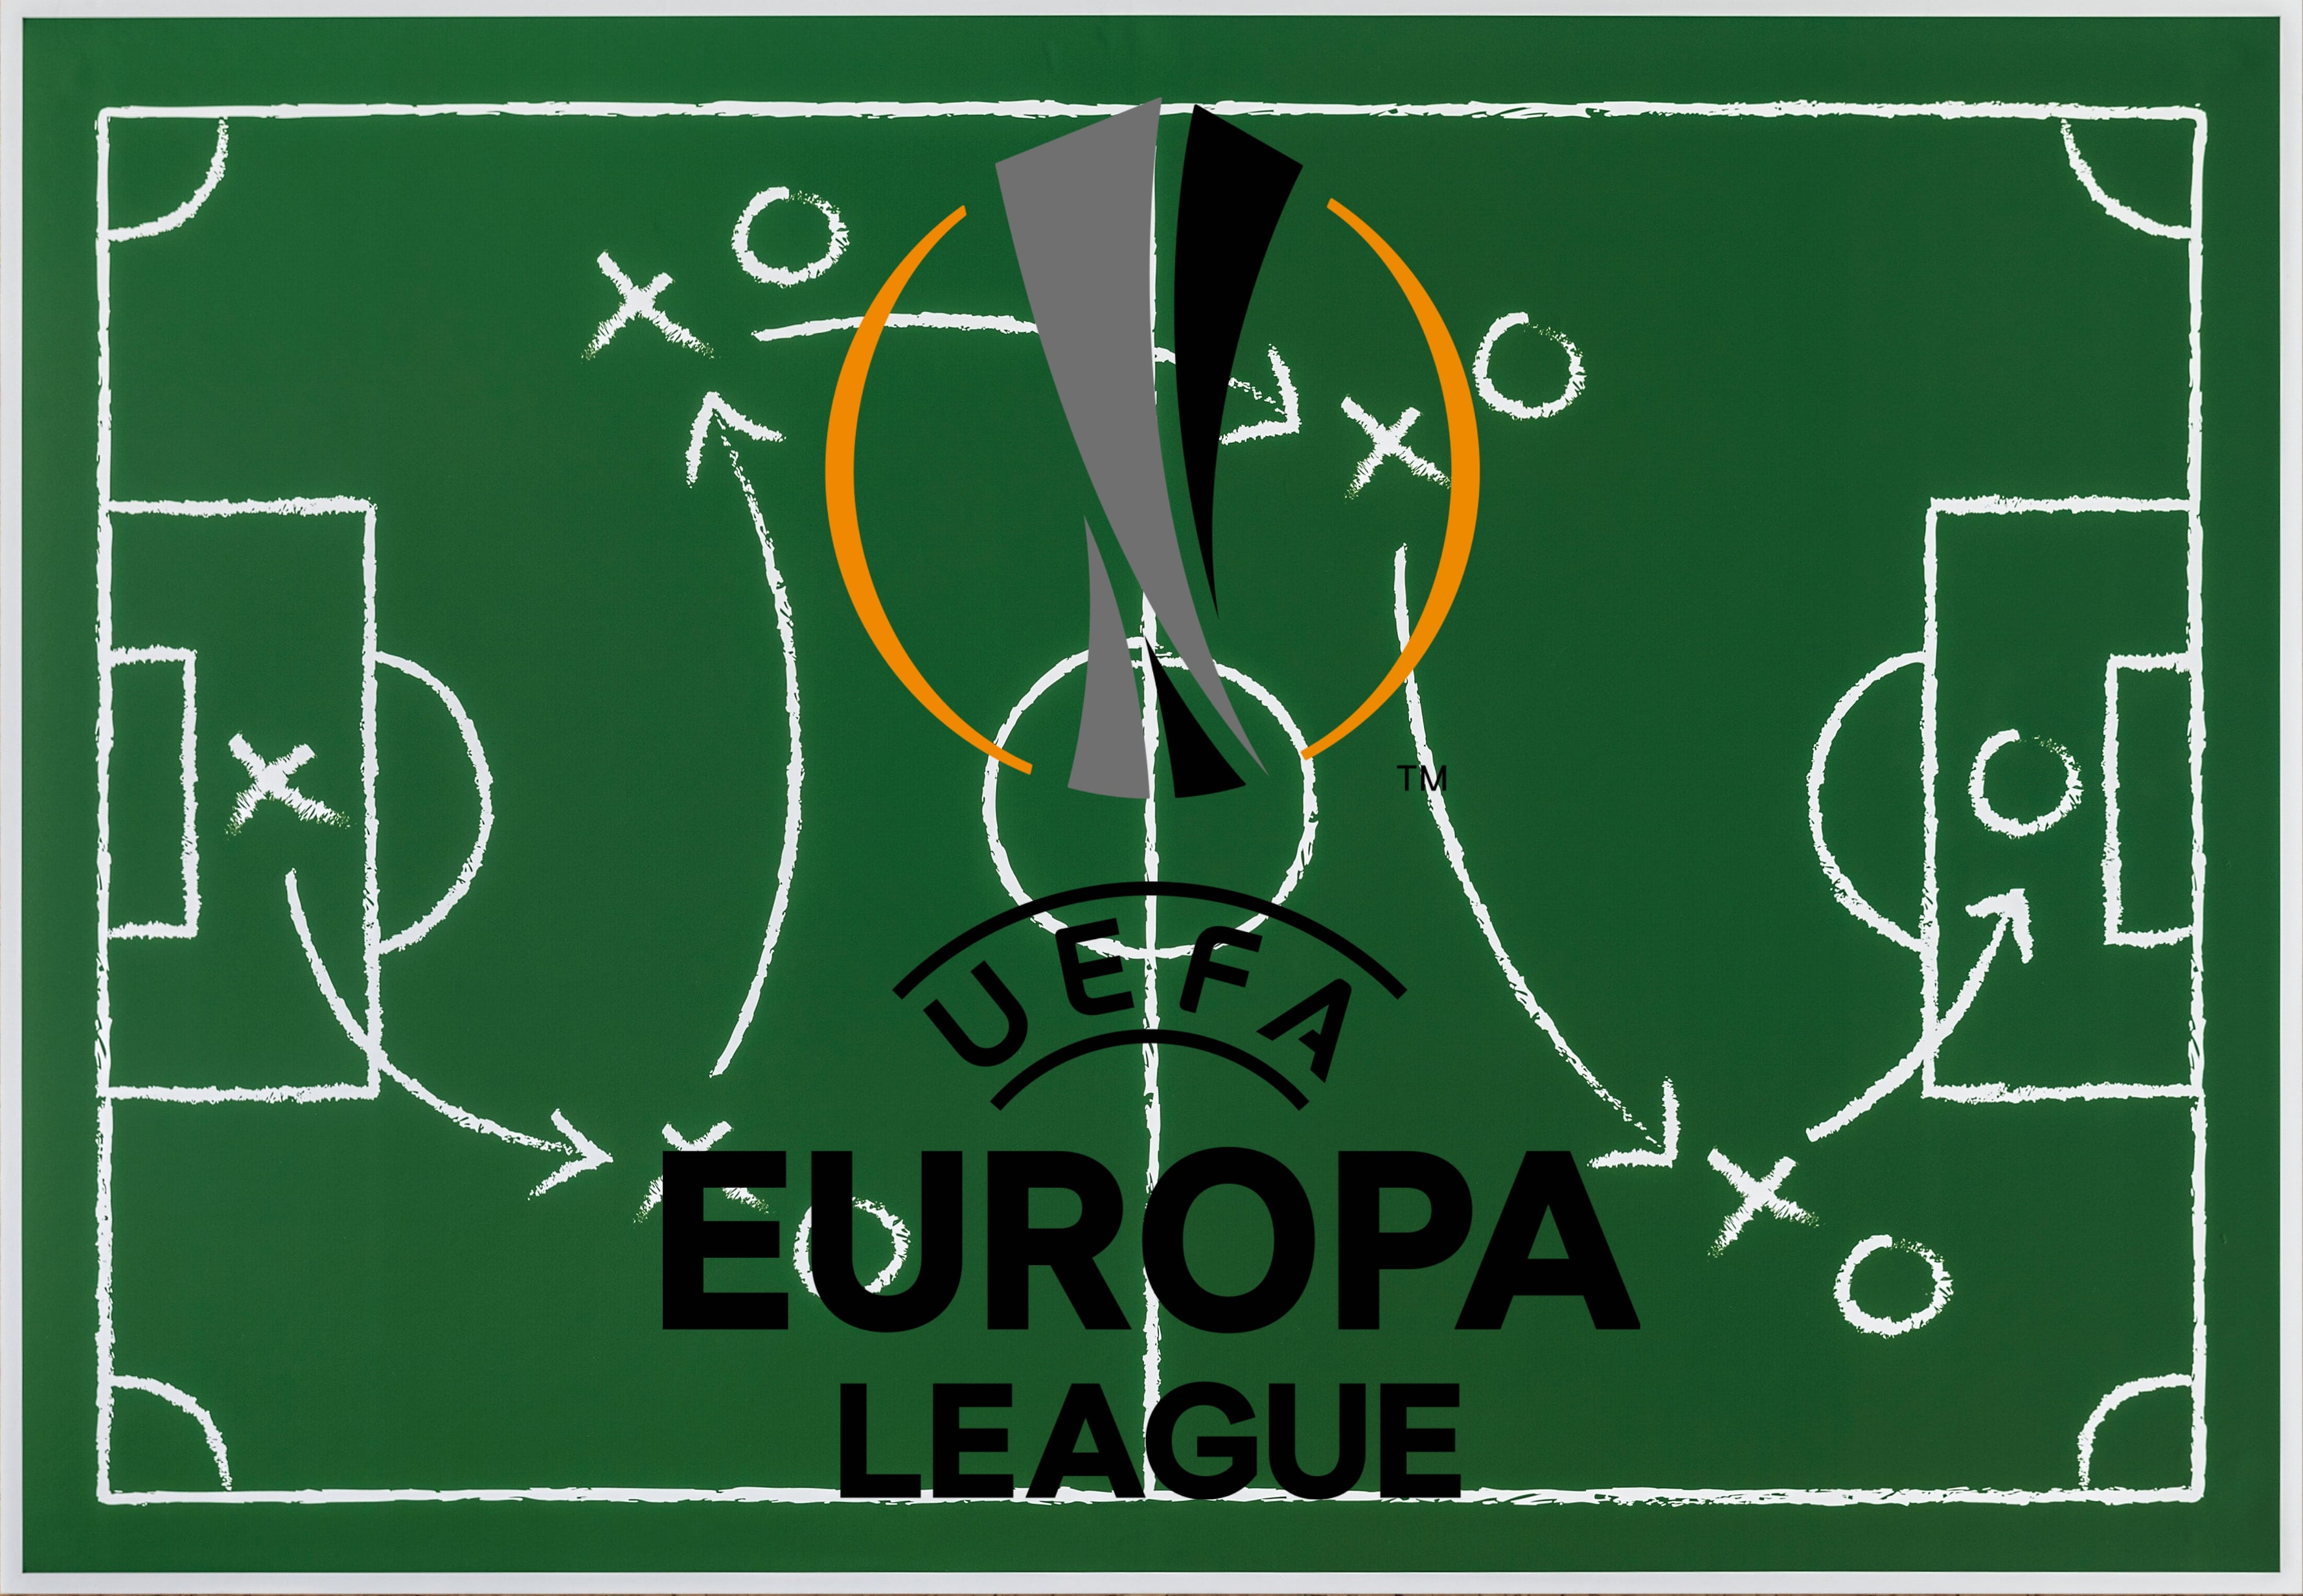 Europa League 2019/20 Format and Regulations